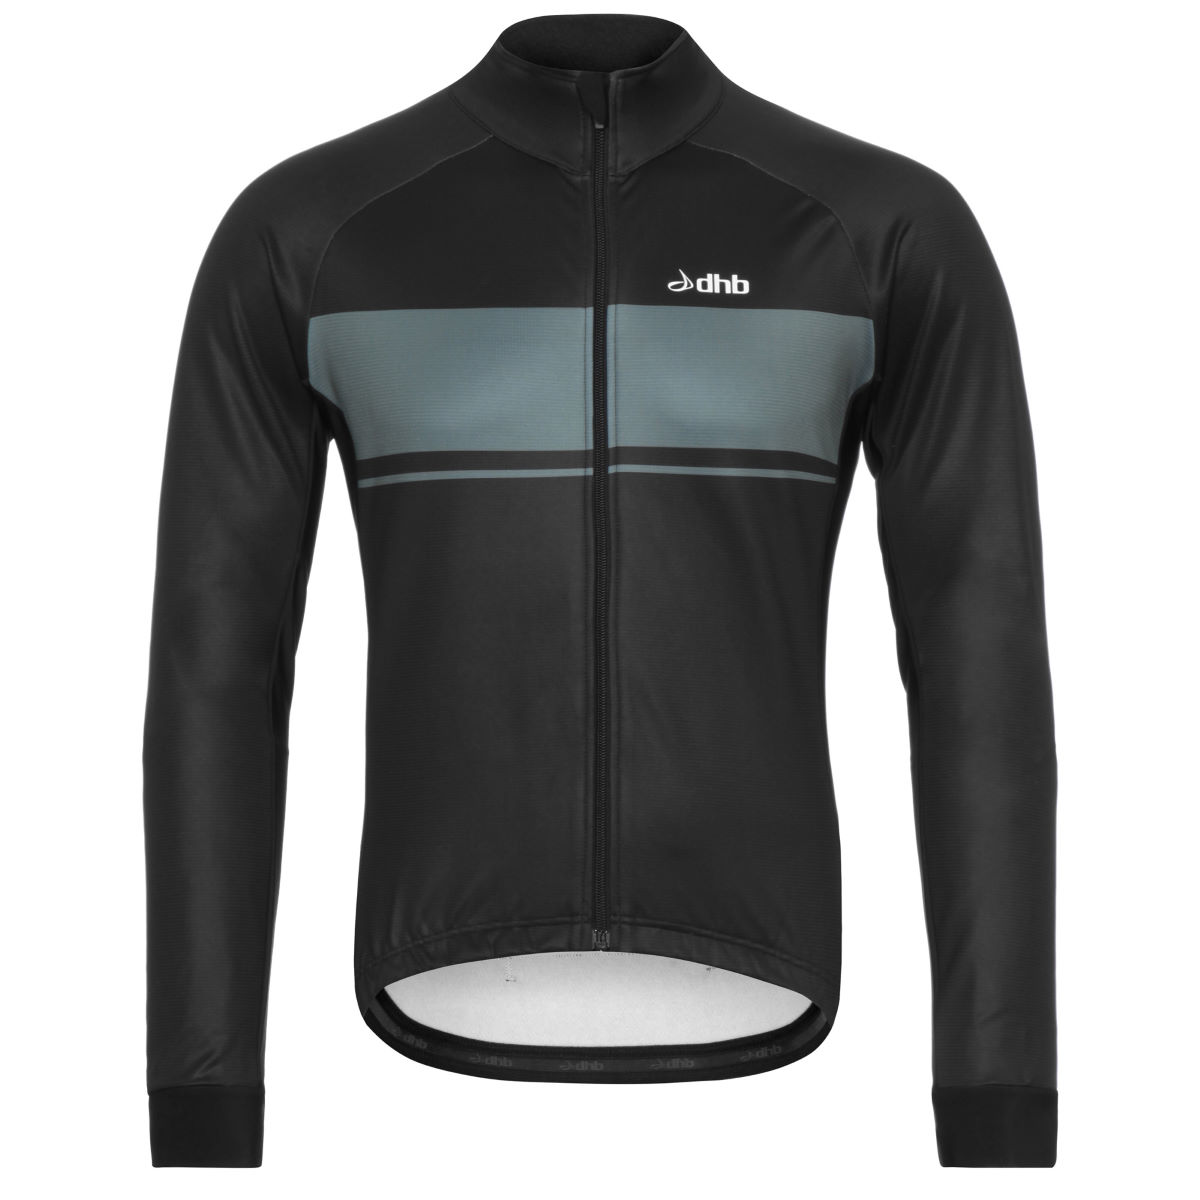 Veste coupe-vent dhb Classic Softshell - Large Noir Coupe-vents vélo